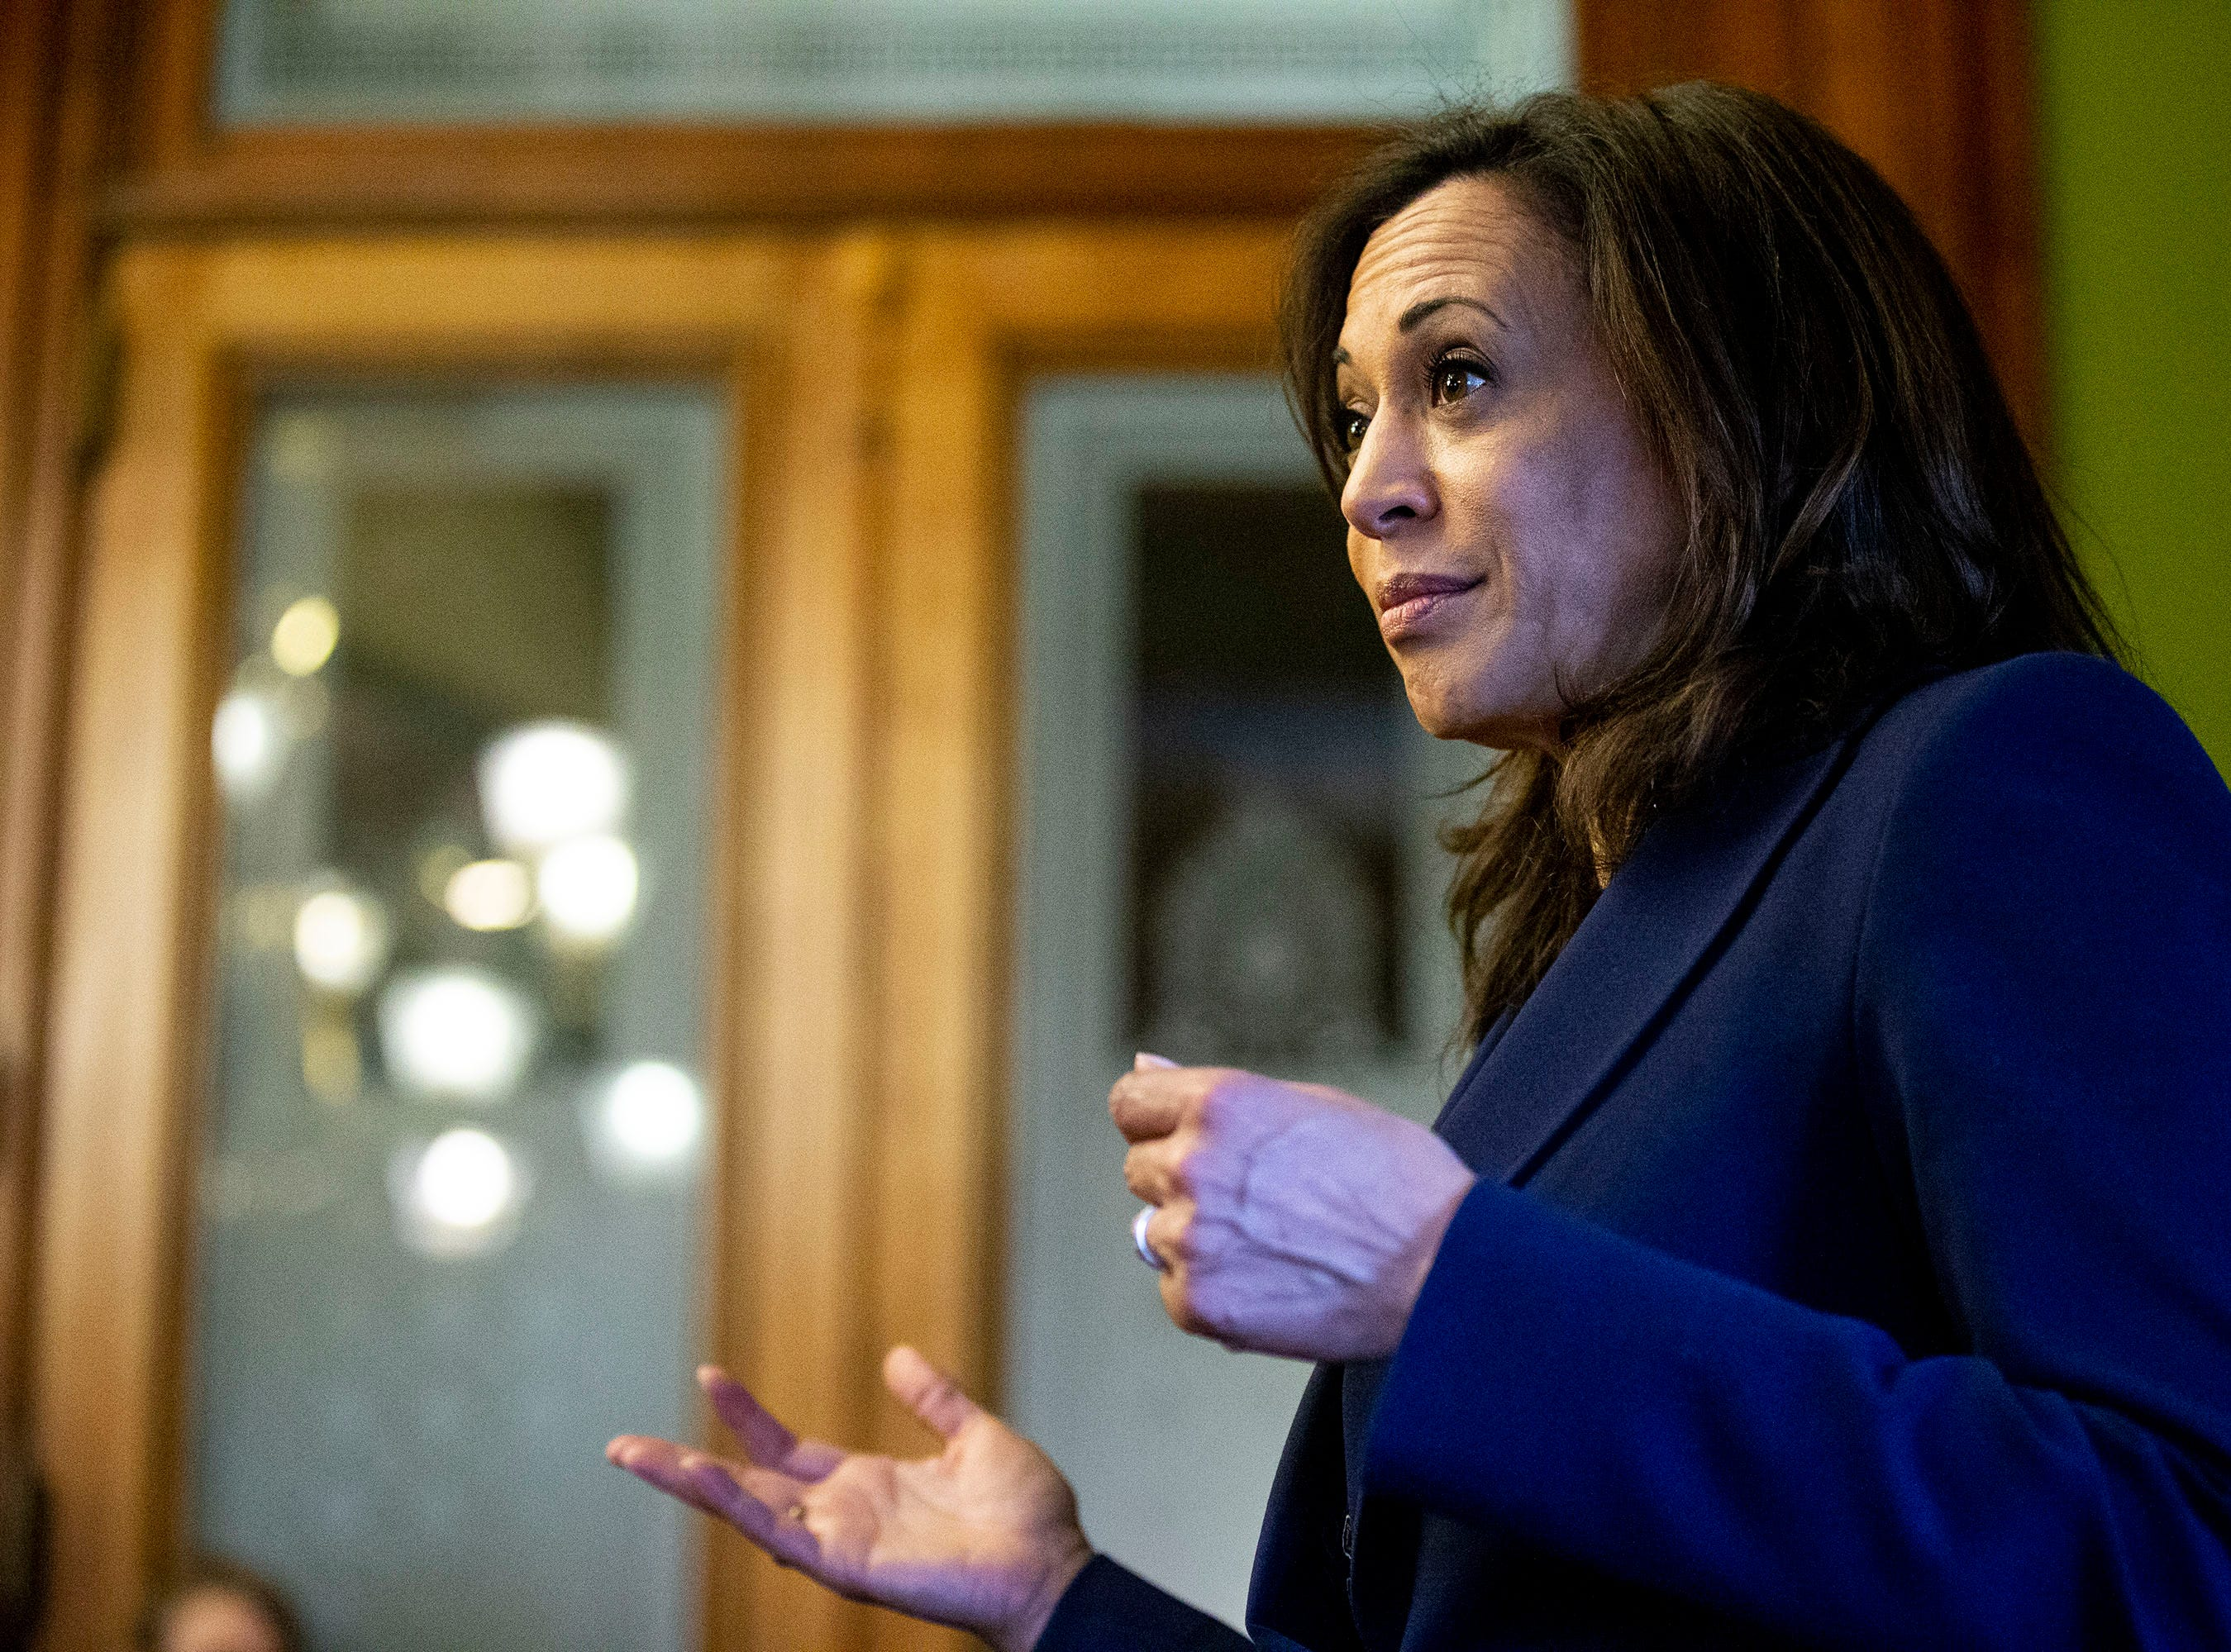 Sen. Kamala Harris, D-CA, meets with a group of young people who work at the Iowa Captiol while making campaign stops on Thursday, April 11, 2019, in Des Moines.